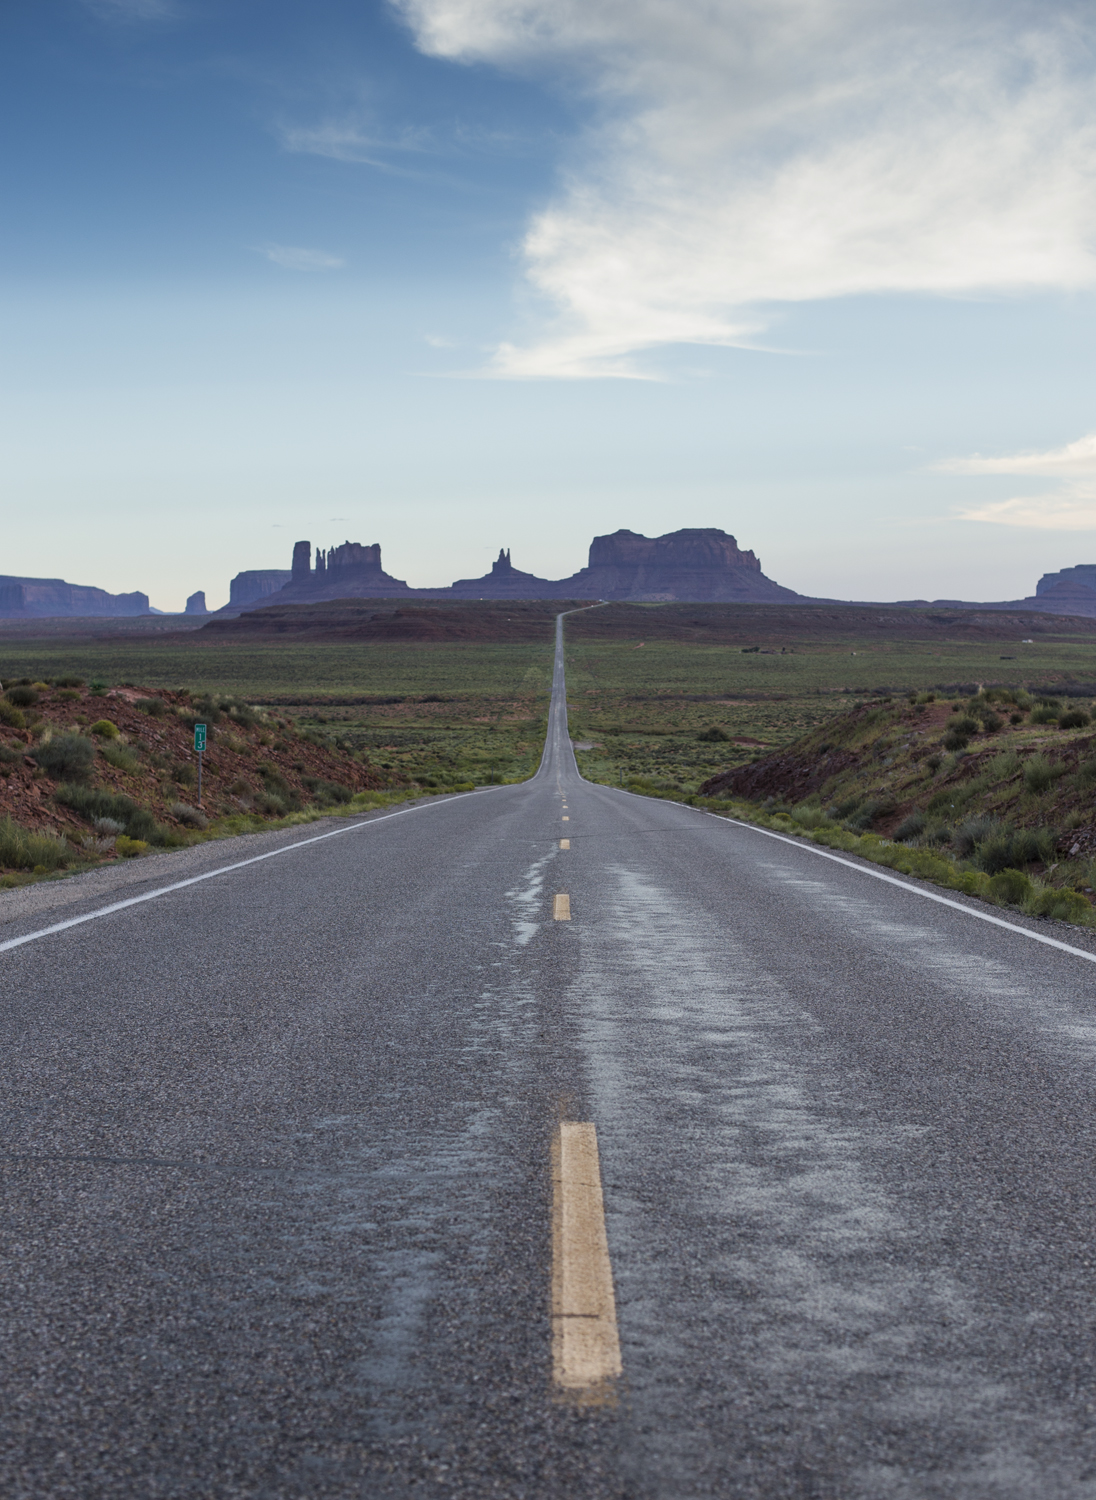 A look down the road to Monument Valley  Canon 6D, Canon 50mm f/1.4 (iso320, f/4, 1/500s)